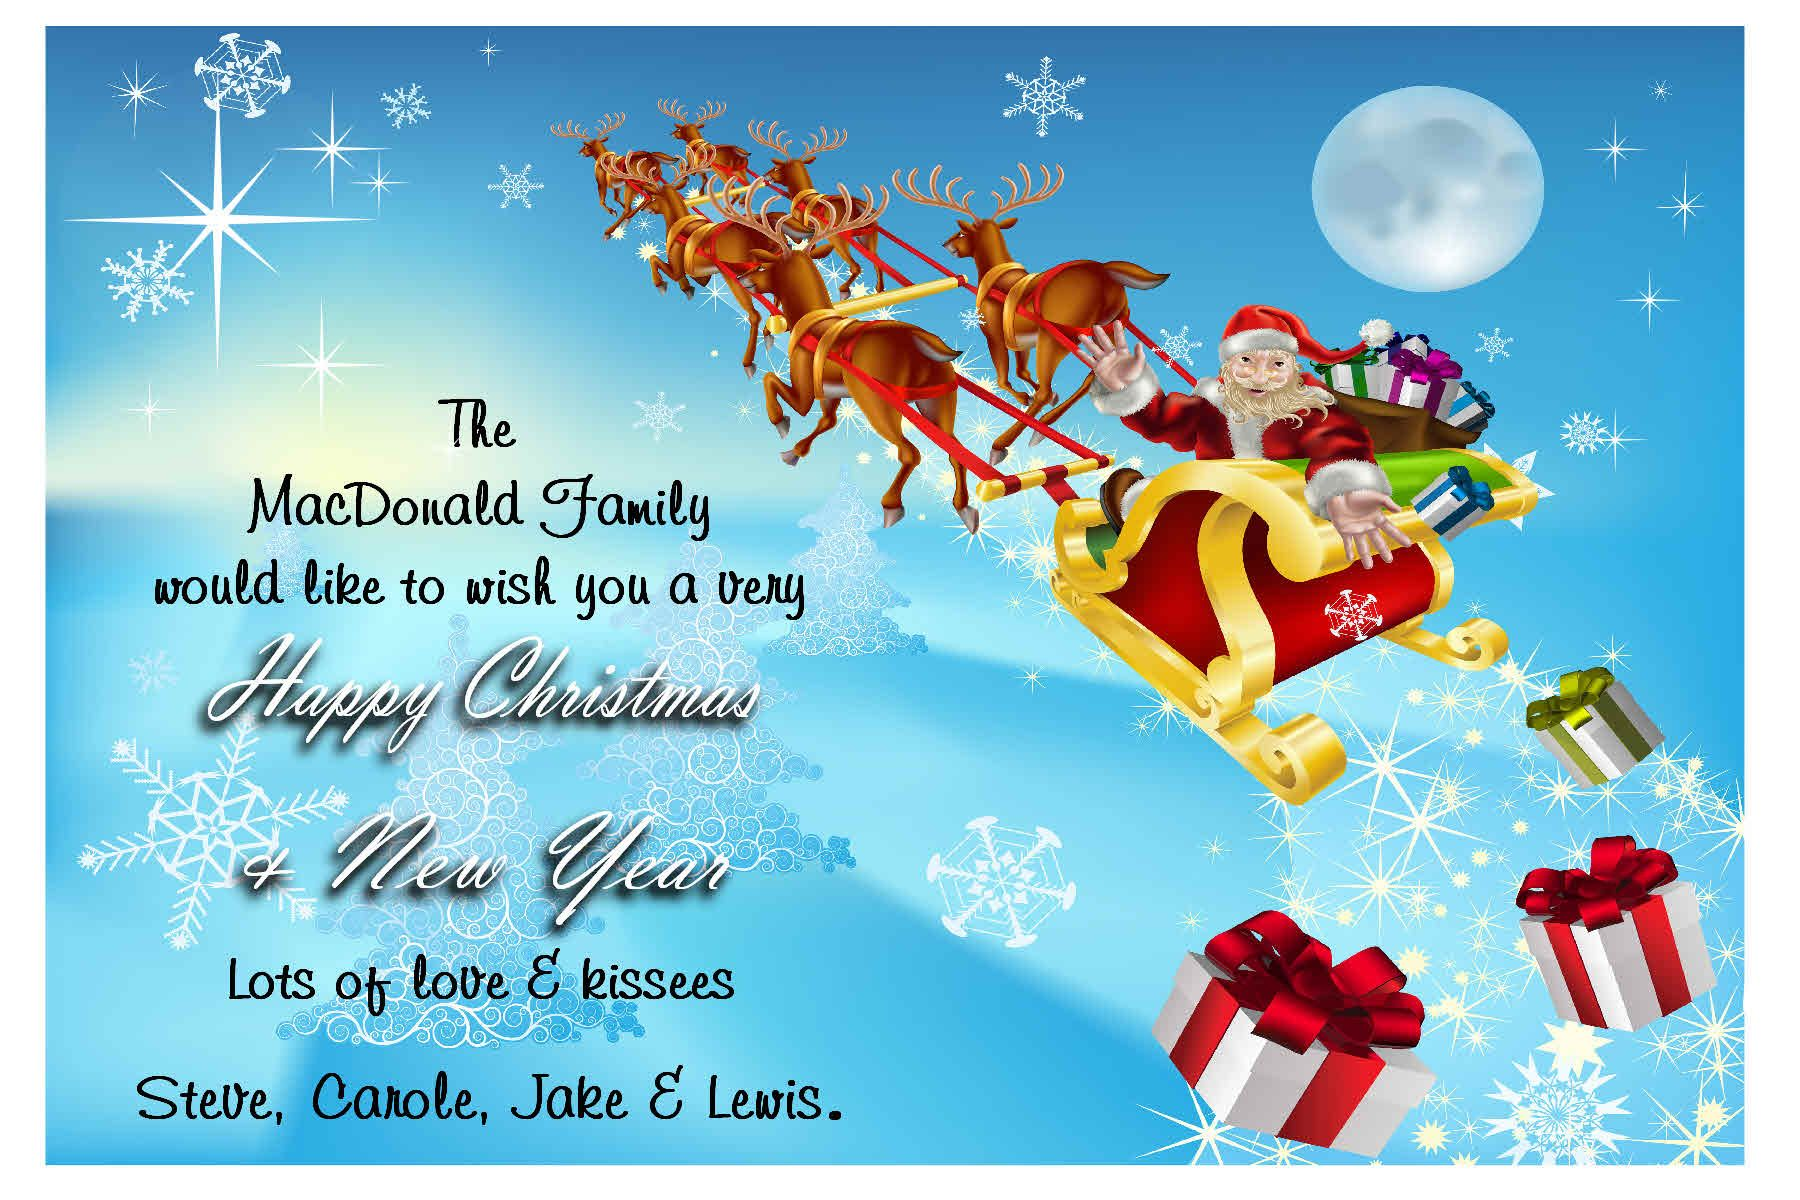 Unique christmas greeting cards 2017 happy holiday 10 personalised santa s sleigh christmas cards a unique way to send xmas wishes to friends family printed onto glossy photographic stock white m4hsunfo